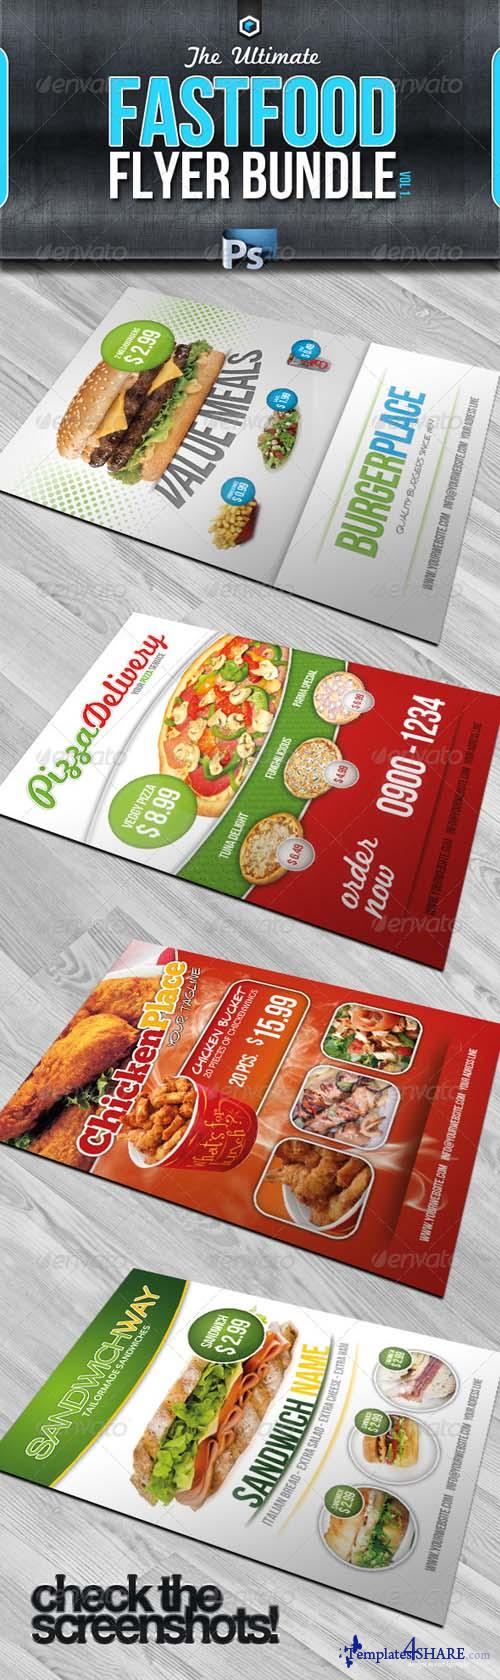 GraphicRiver RW Ultimate Fastfood Flyer Bundle Vol.1